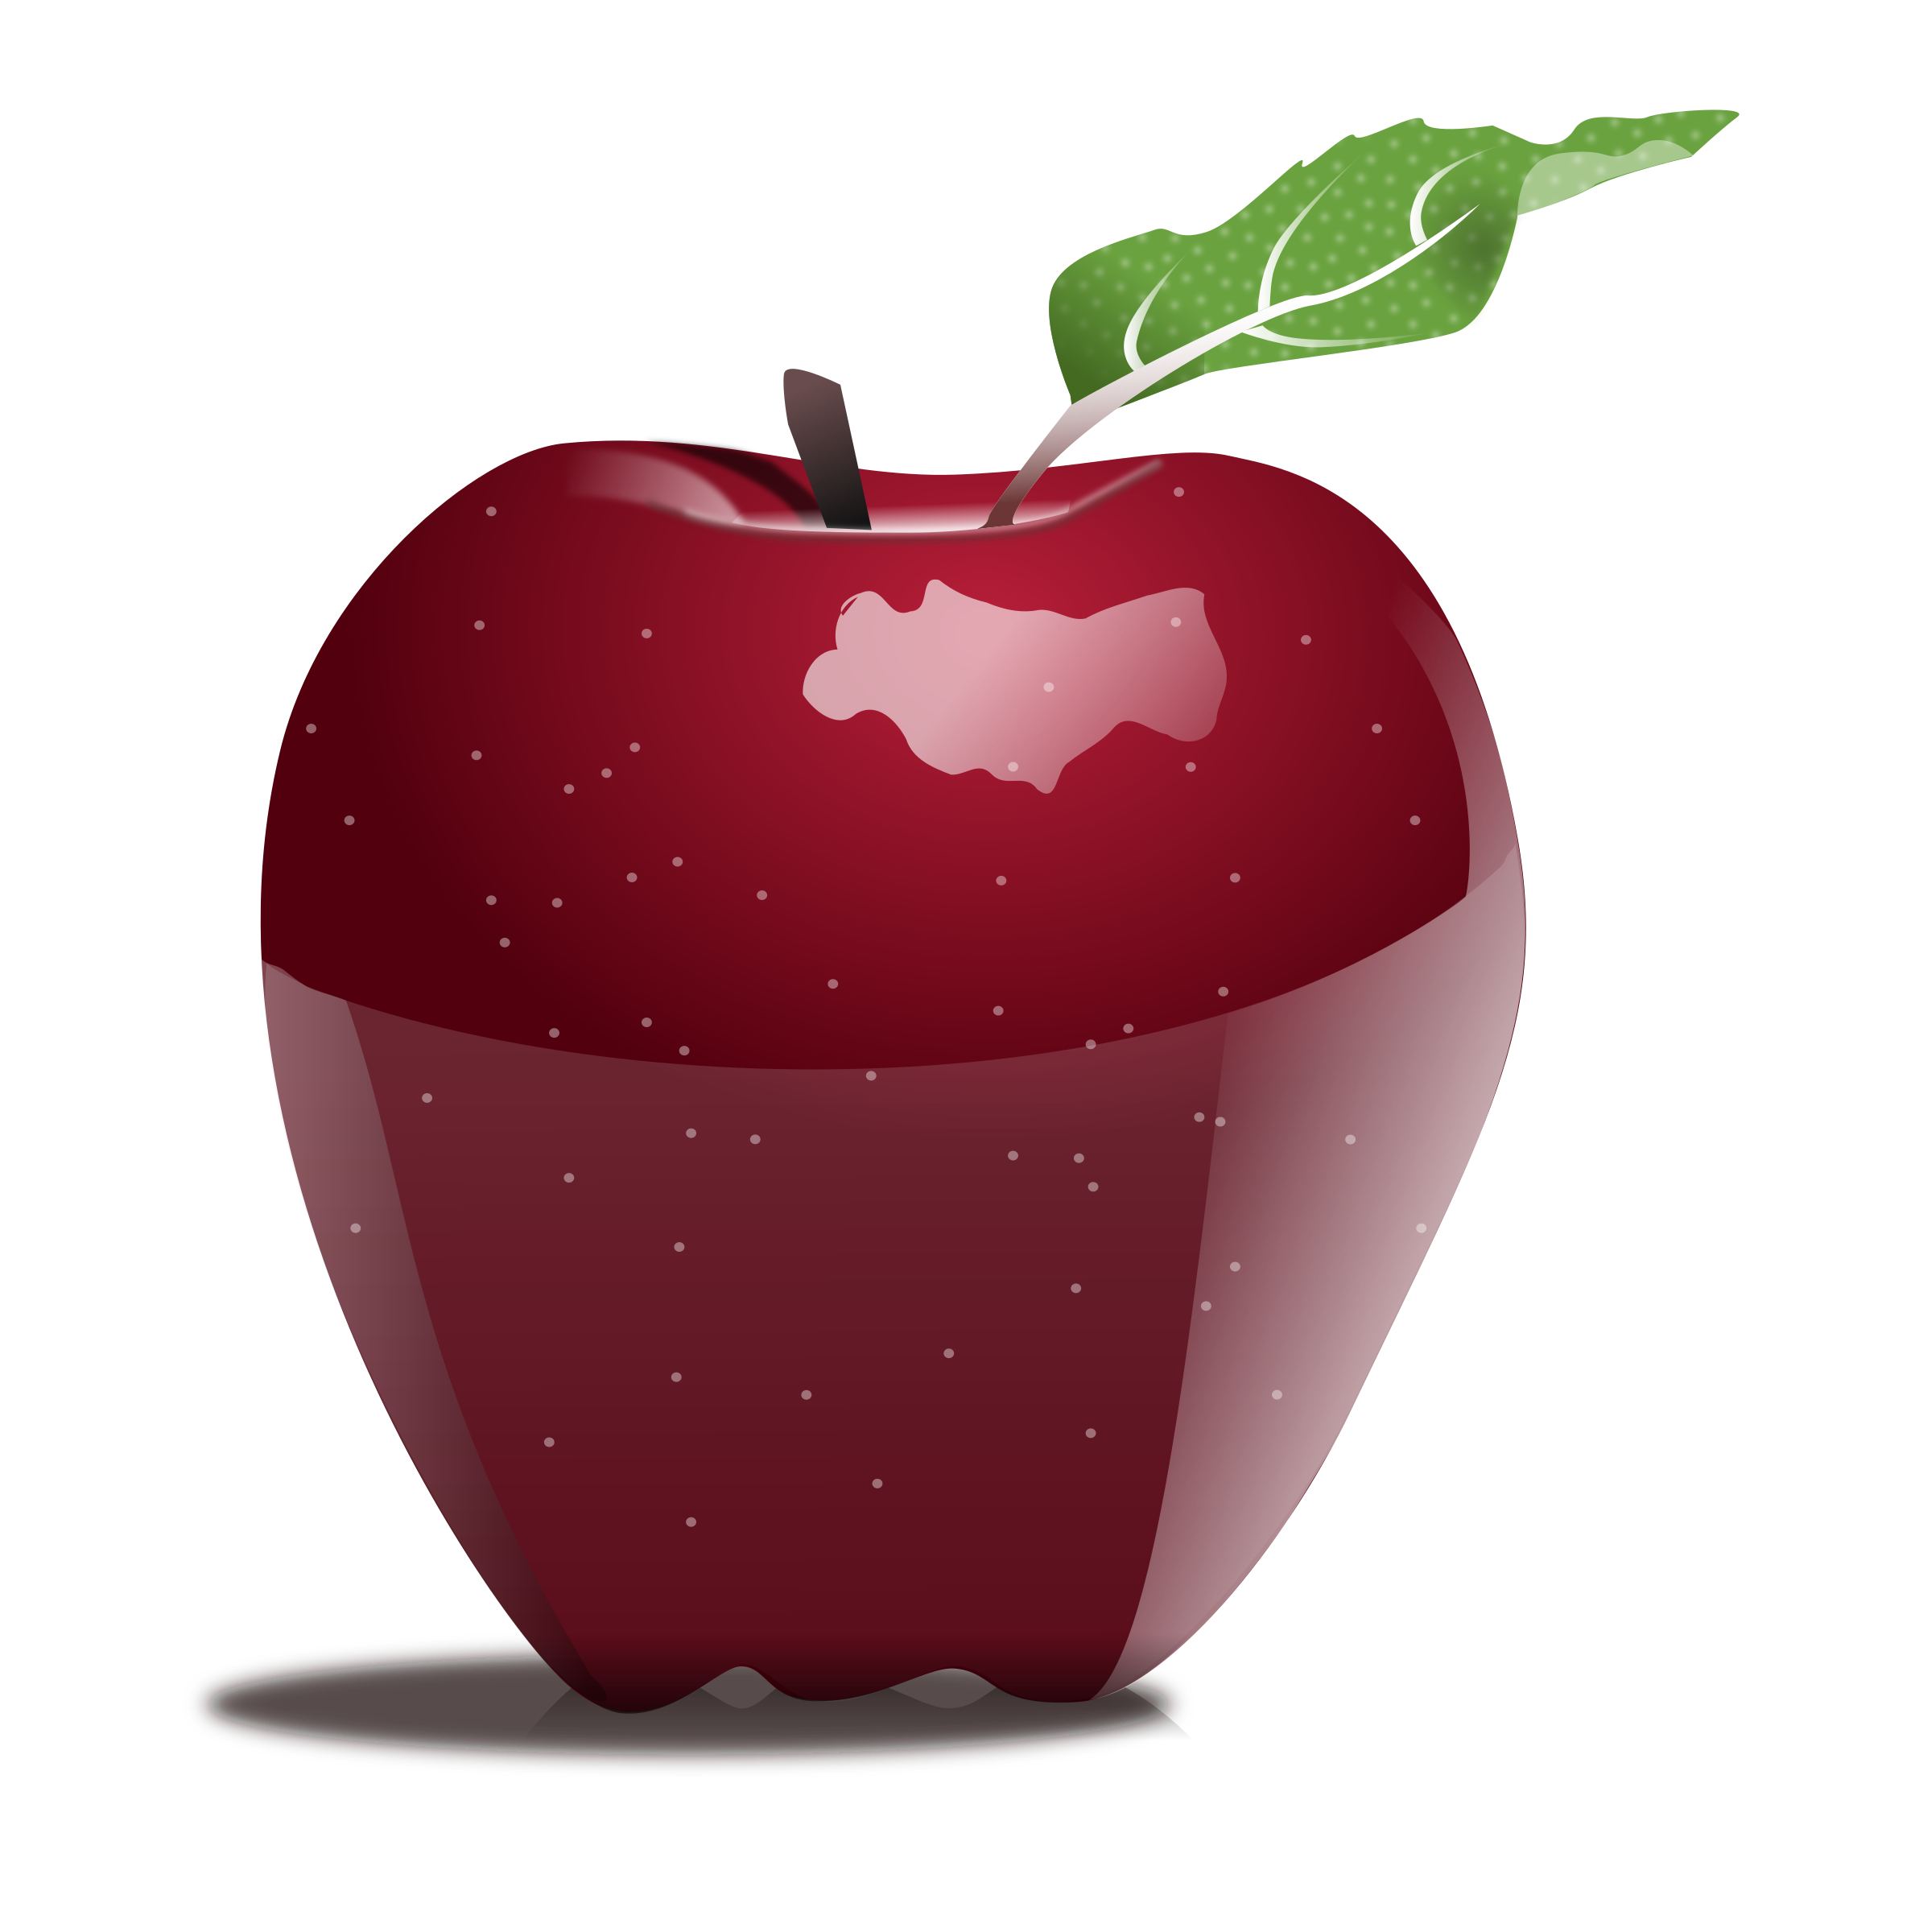 Apple by prapanj